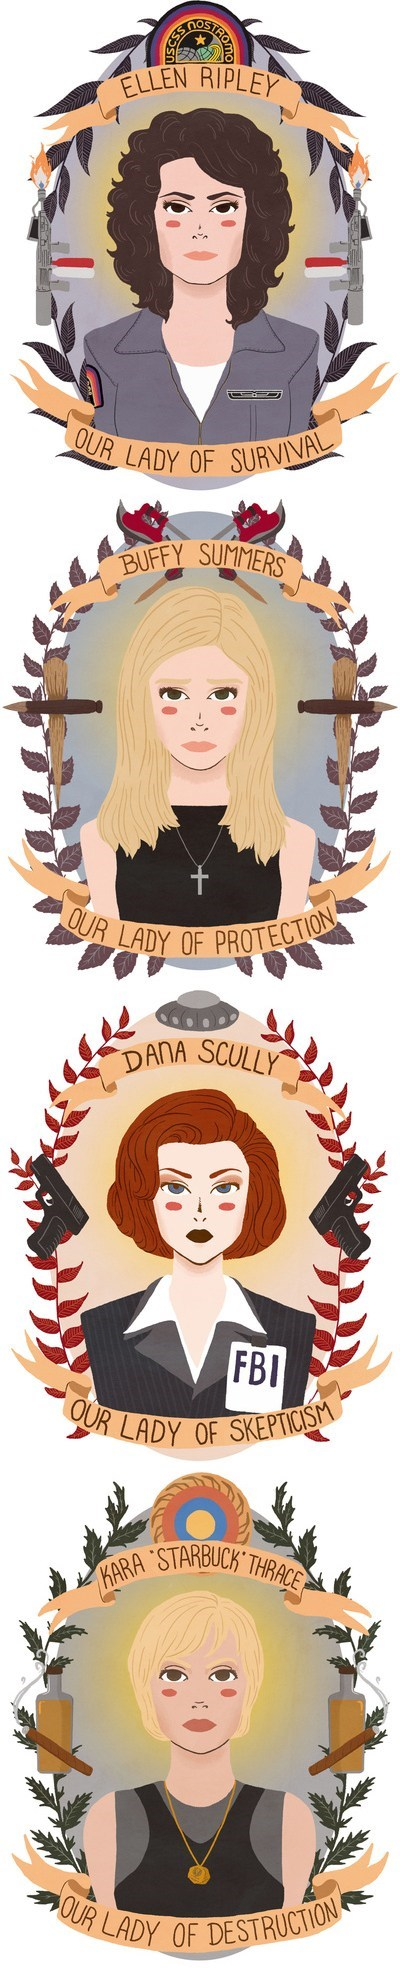 Aliens,buffy summers,kara thrace,Fan Art,patron saints,the x-files,Battlestar Galactica,Ellen Ripley,dana scully,Buffy the Vampire Slayer,starbuck